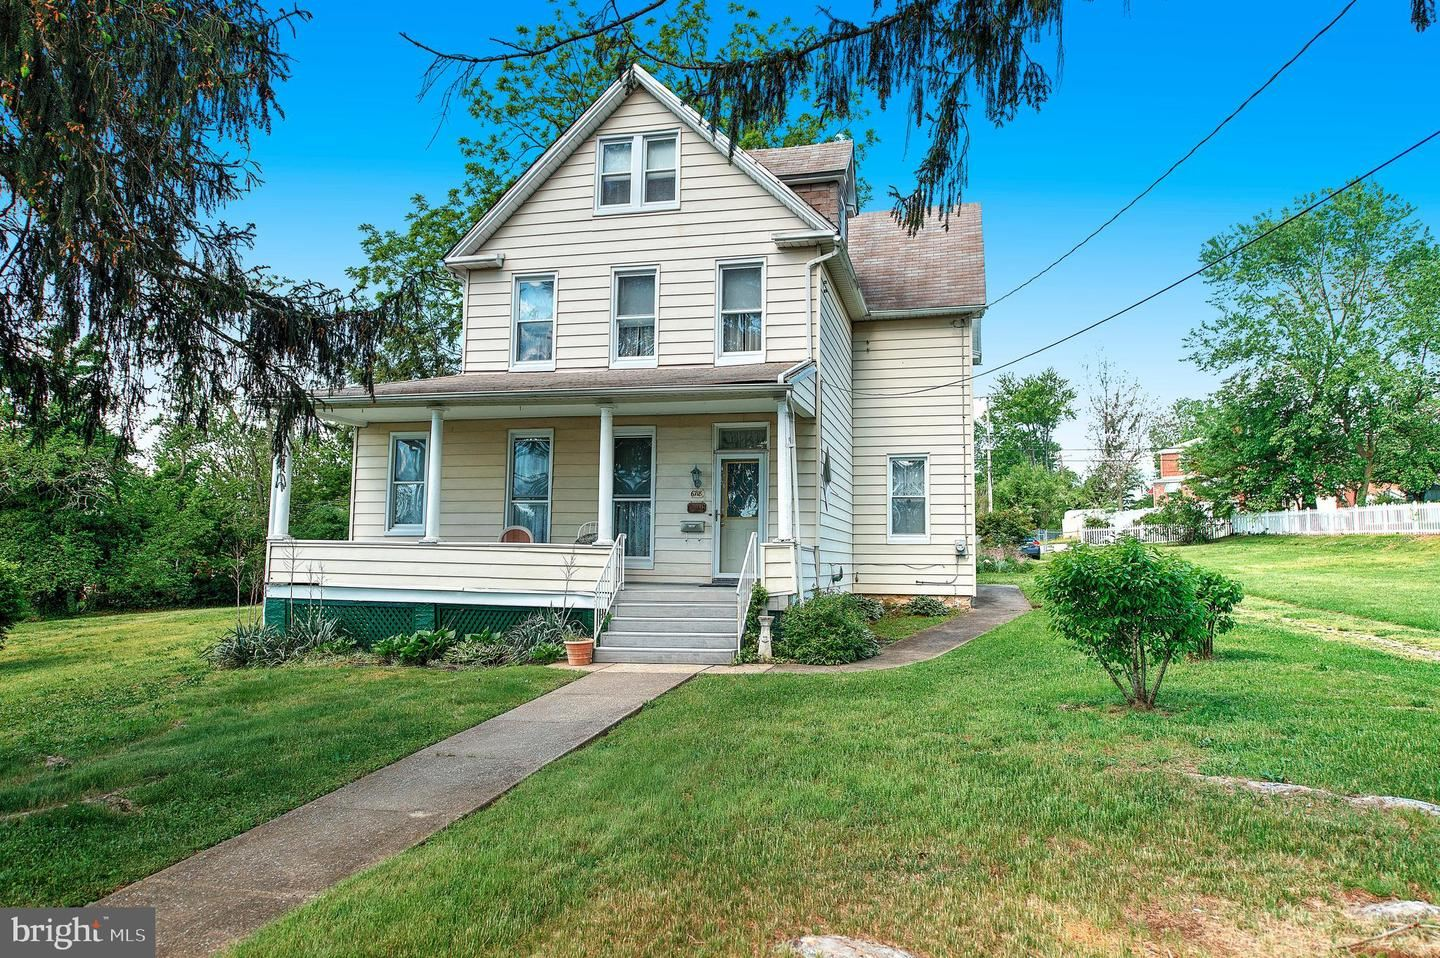 6718 EVERALL AVE, Baltimore, MD 21206 - MLS#: MDBA547804